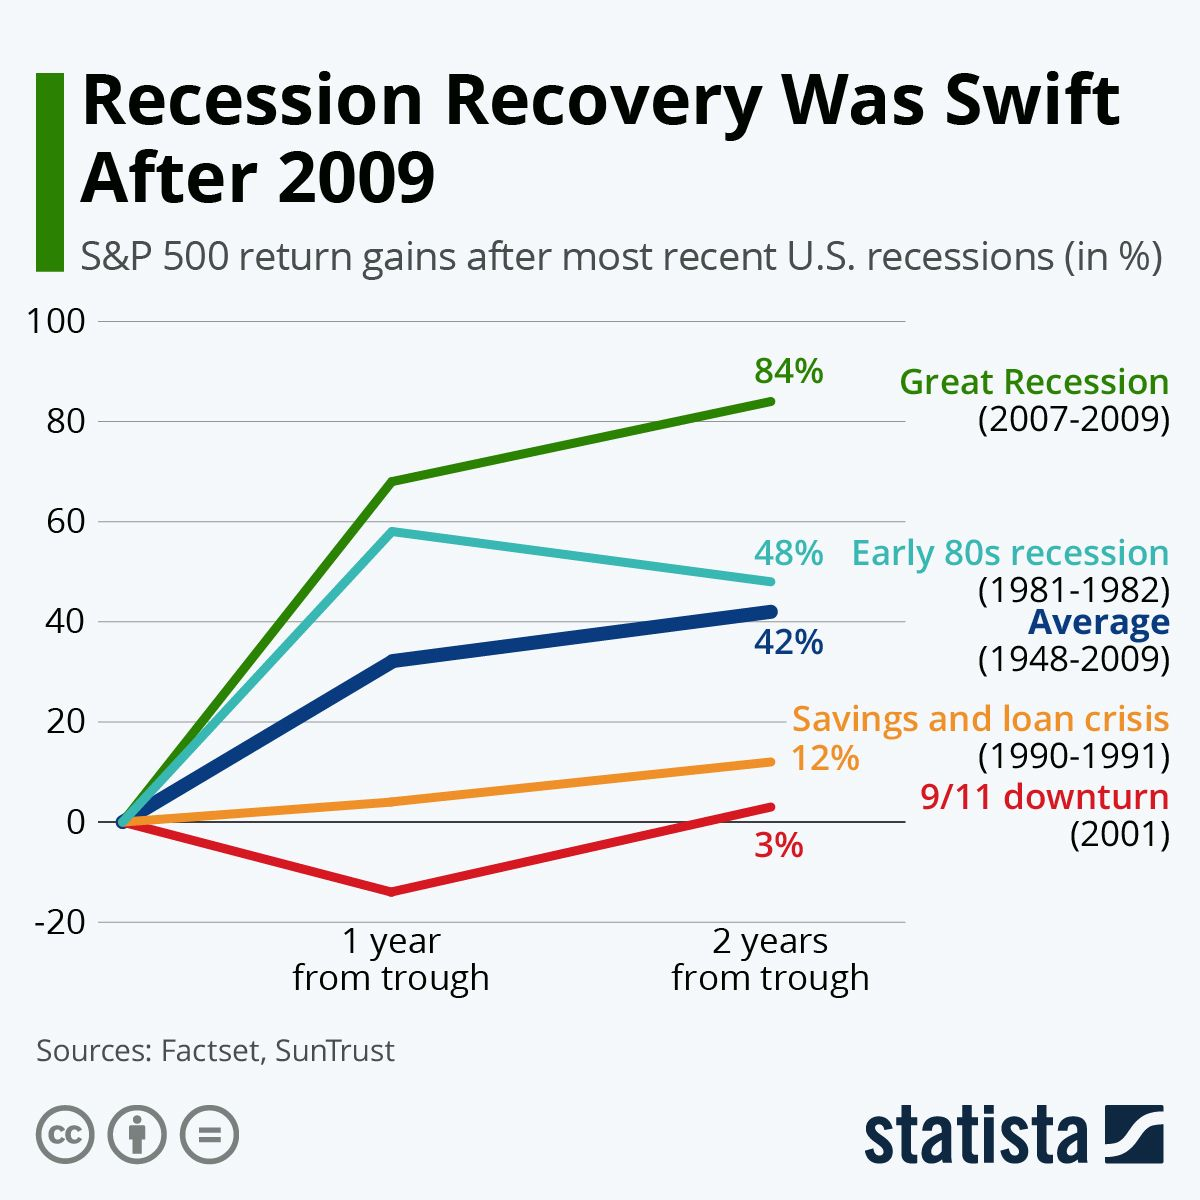 How Fast Has the Economy Recovered After Past Recessions